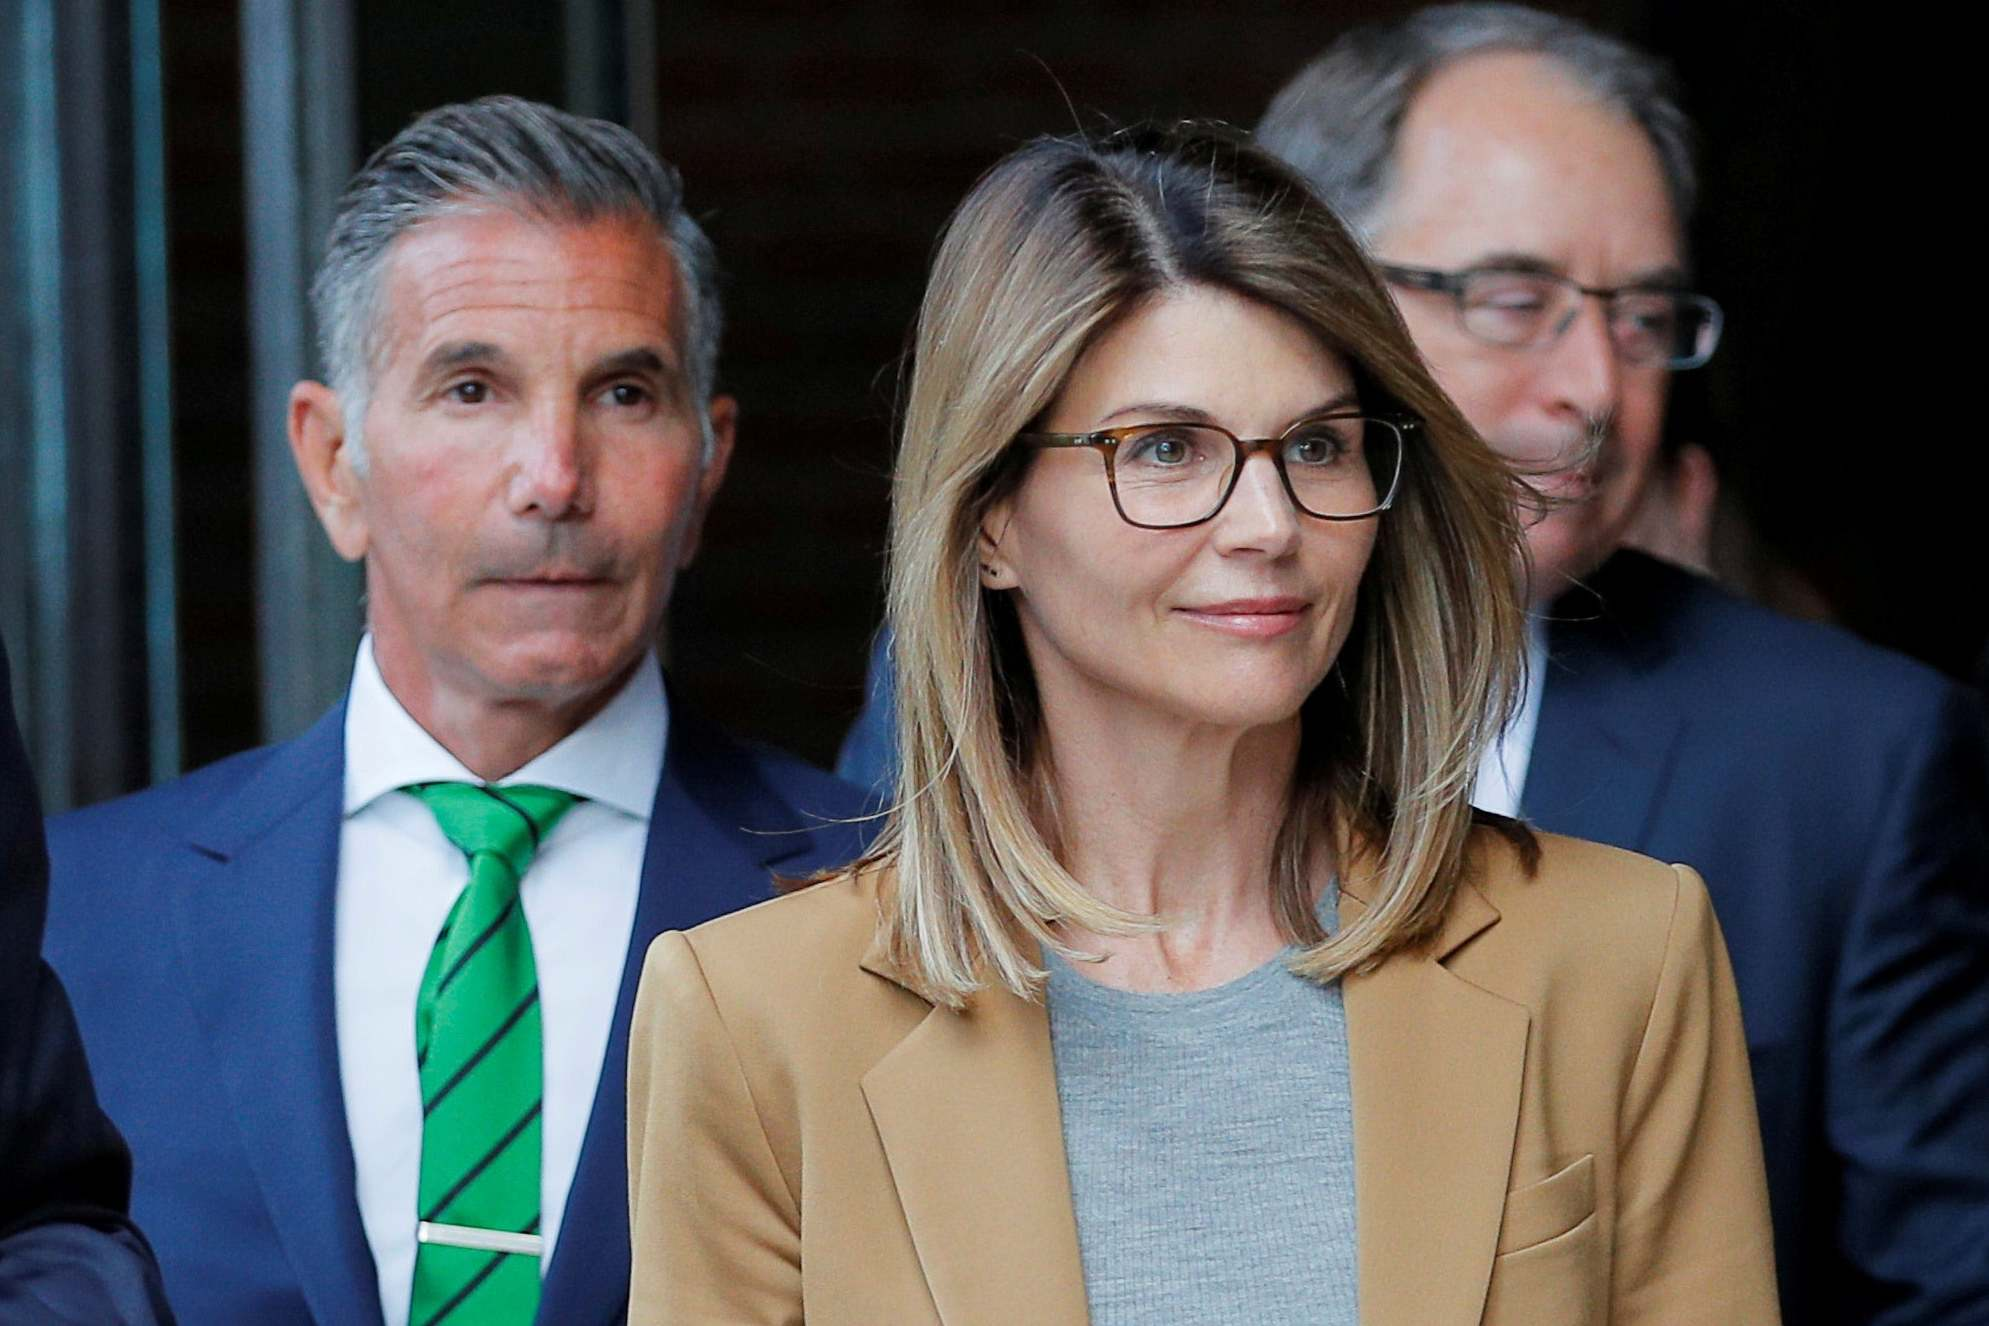 Lori Loughlin launched after serving detention center time length for college bribes rip-off